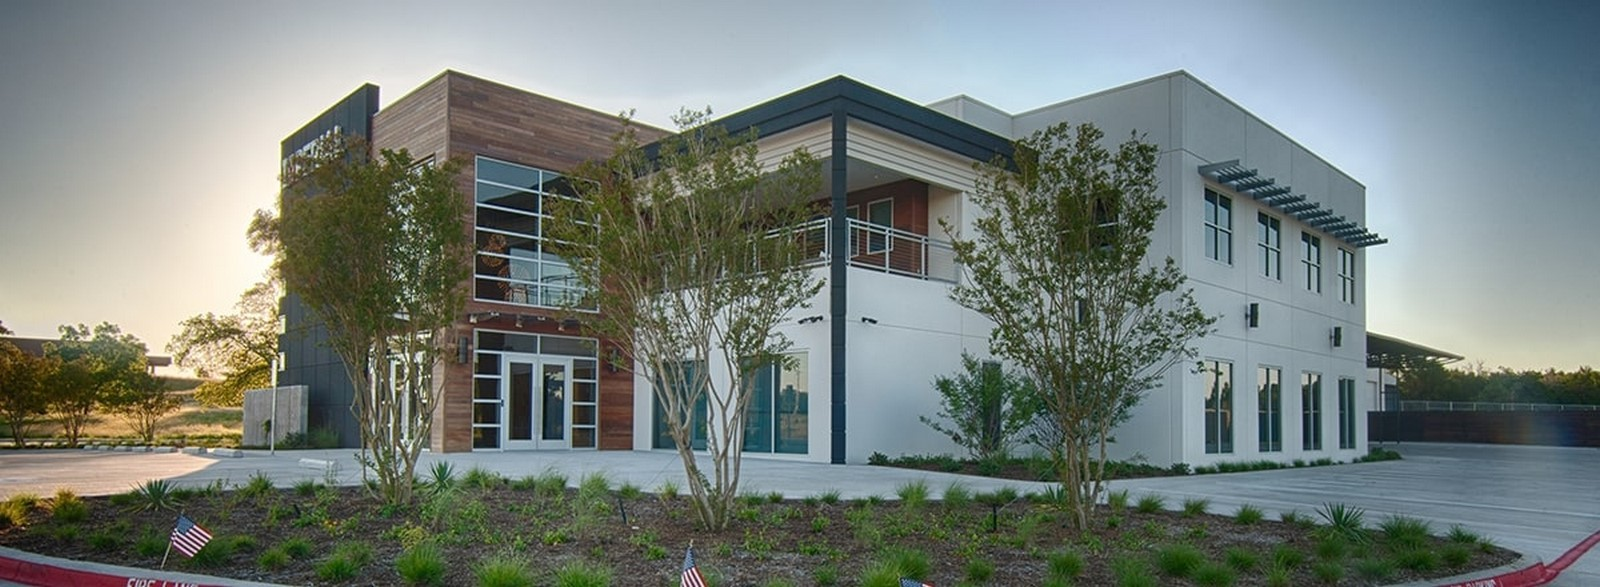 Architects in Fort Worth - Top 55 Architects in Fort Worth - Sheet16